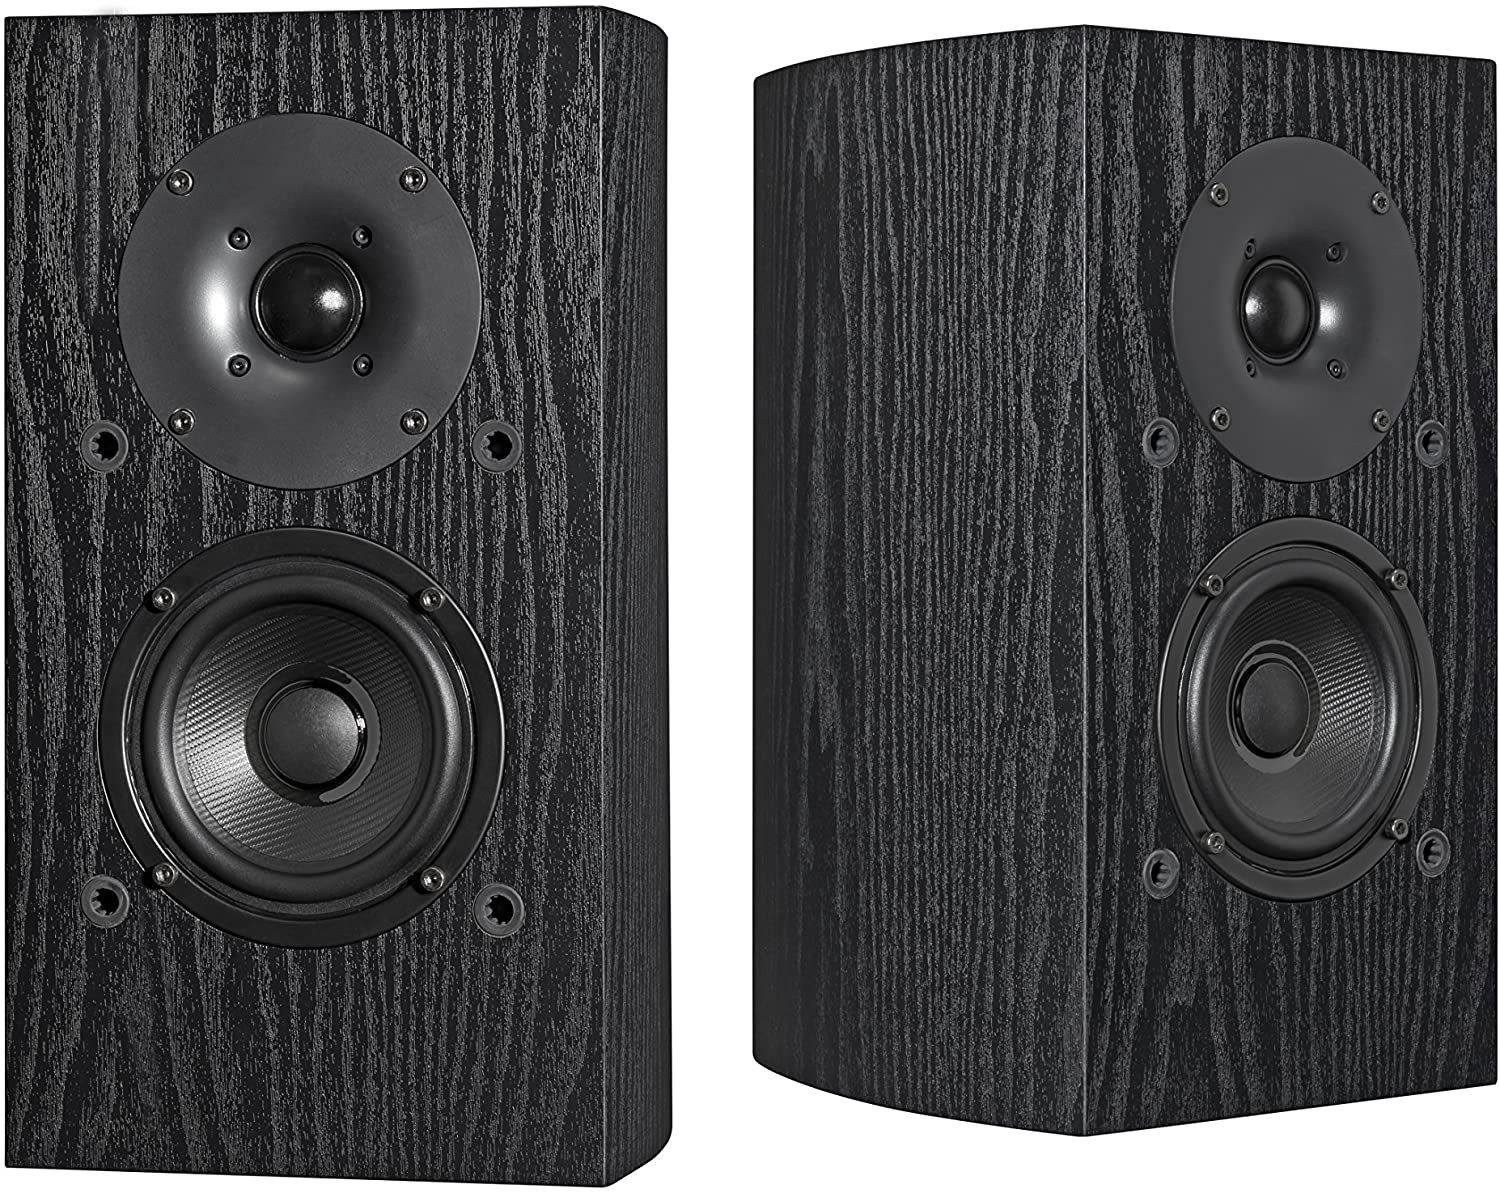 2020 Best Bookshelf HiFi Speakers For Every Budget in Malaysia.jpg